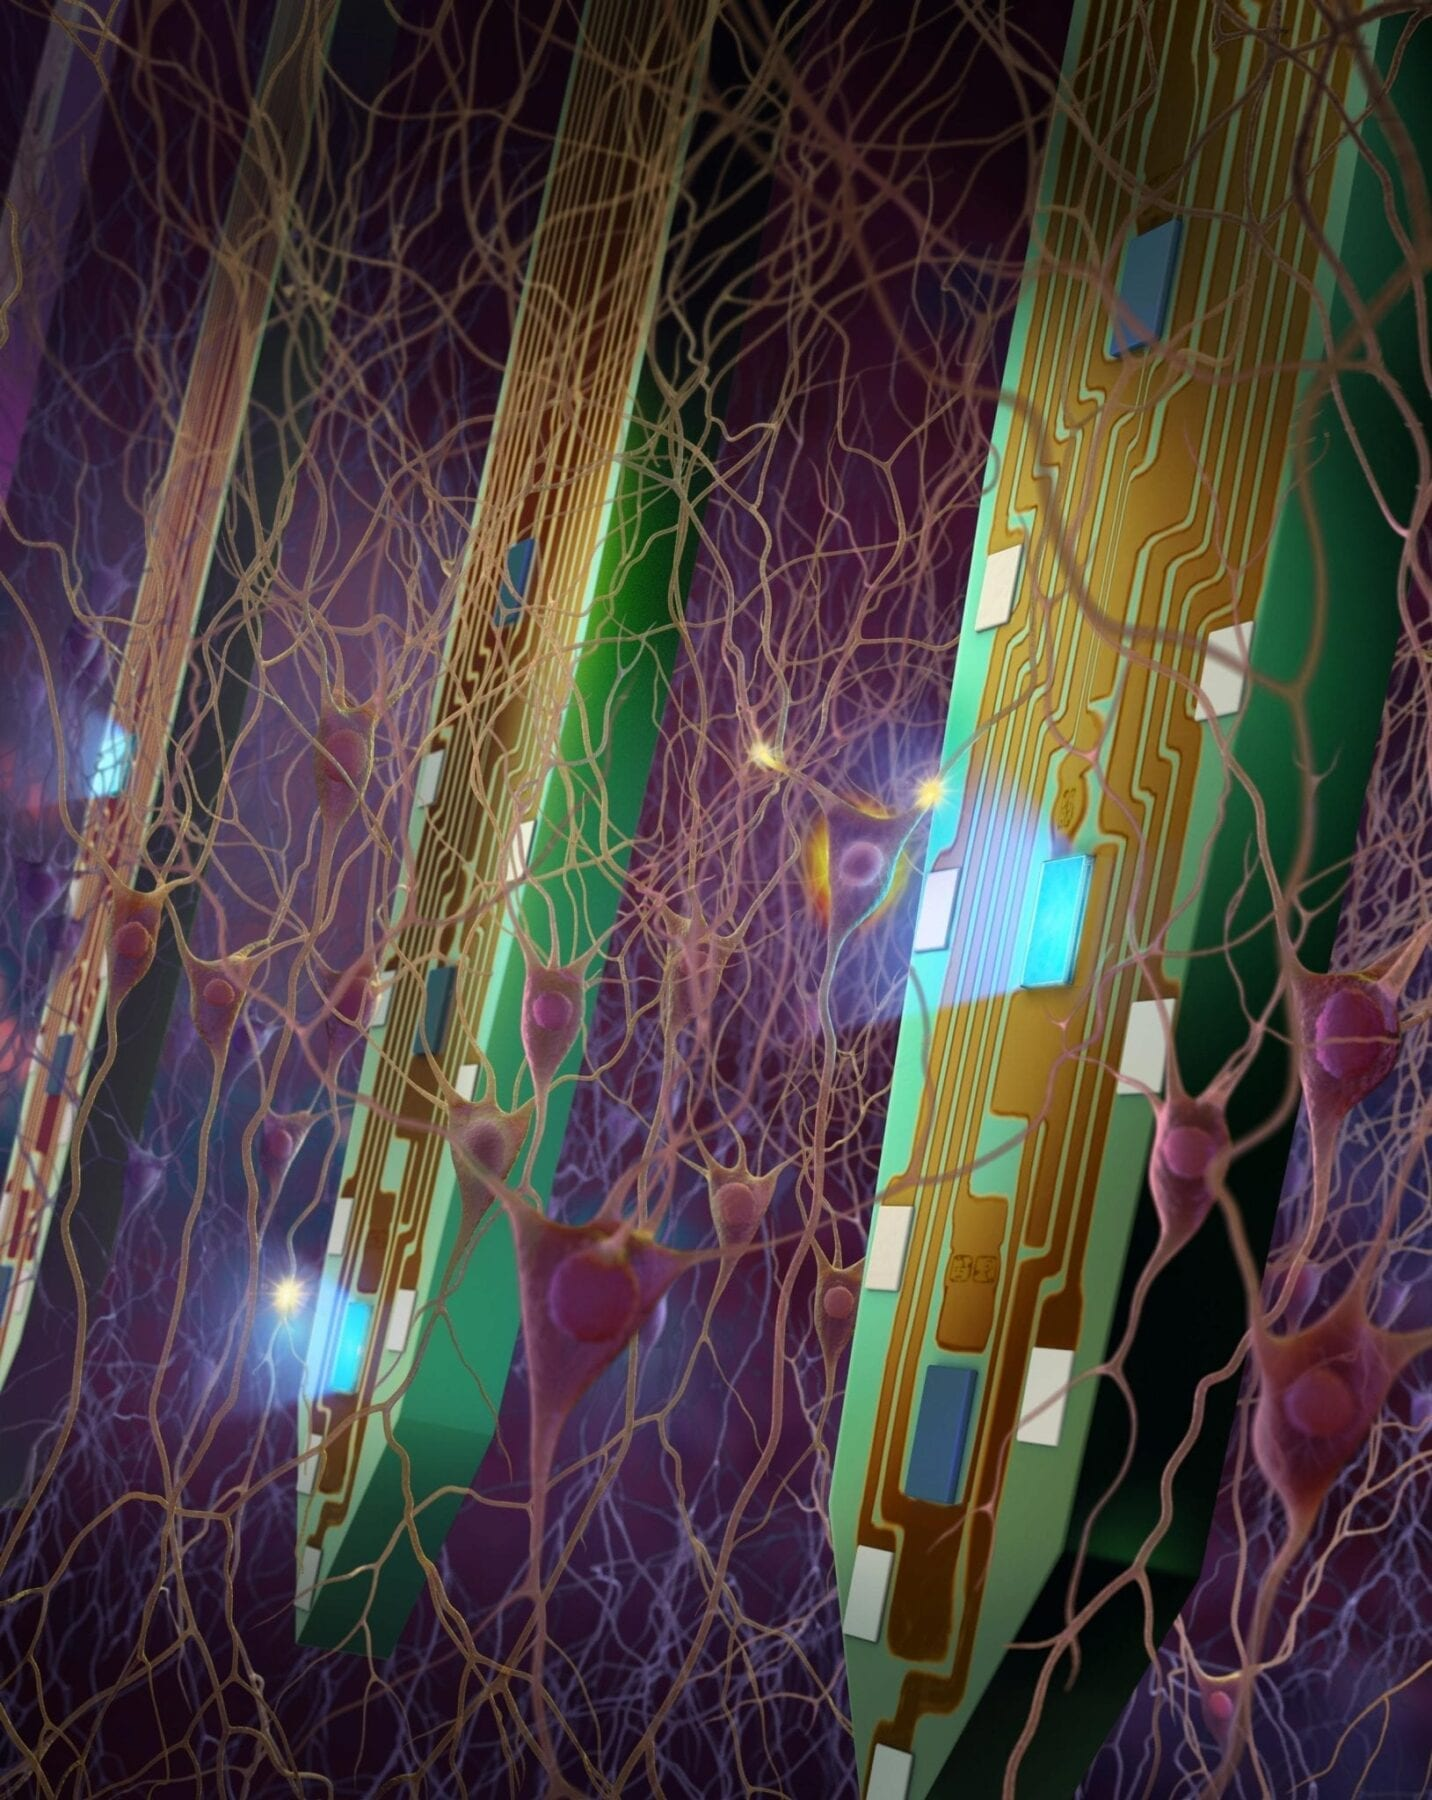 Mapping the brain: Probes with tiny LEDs shed light on neural pathways